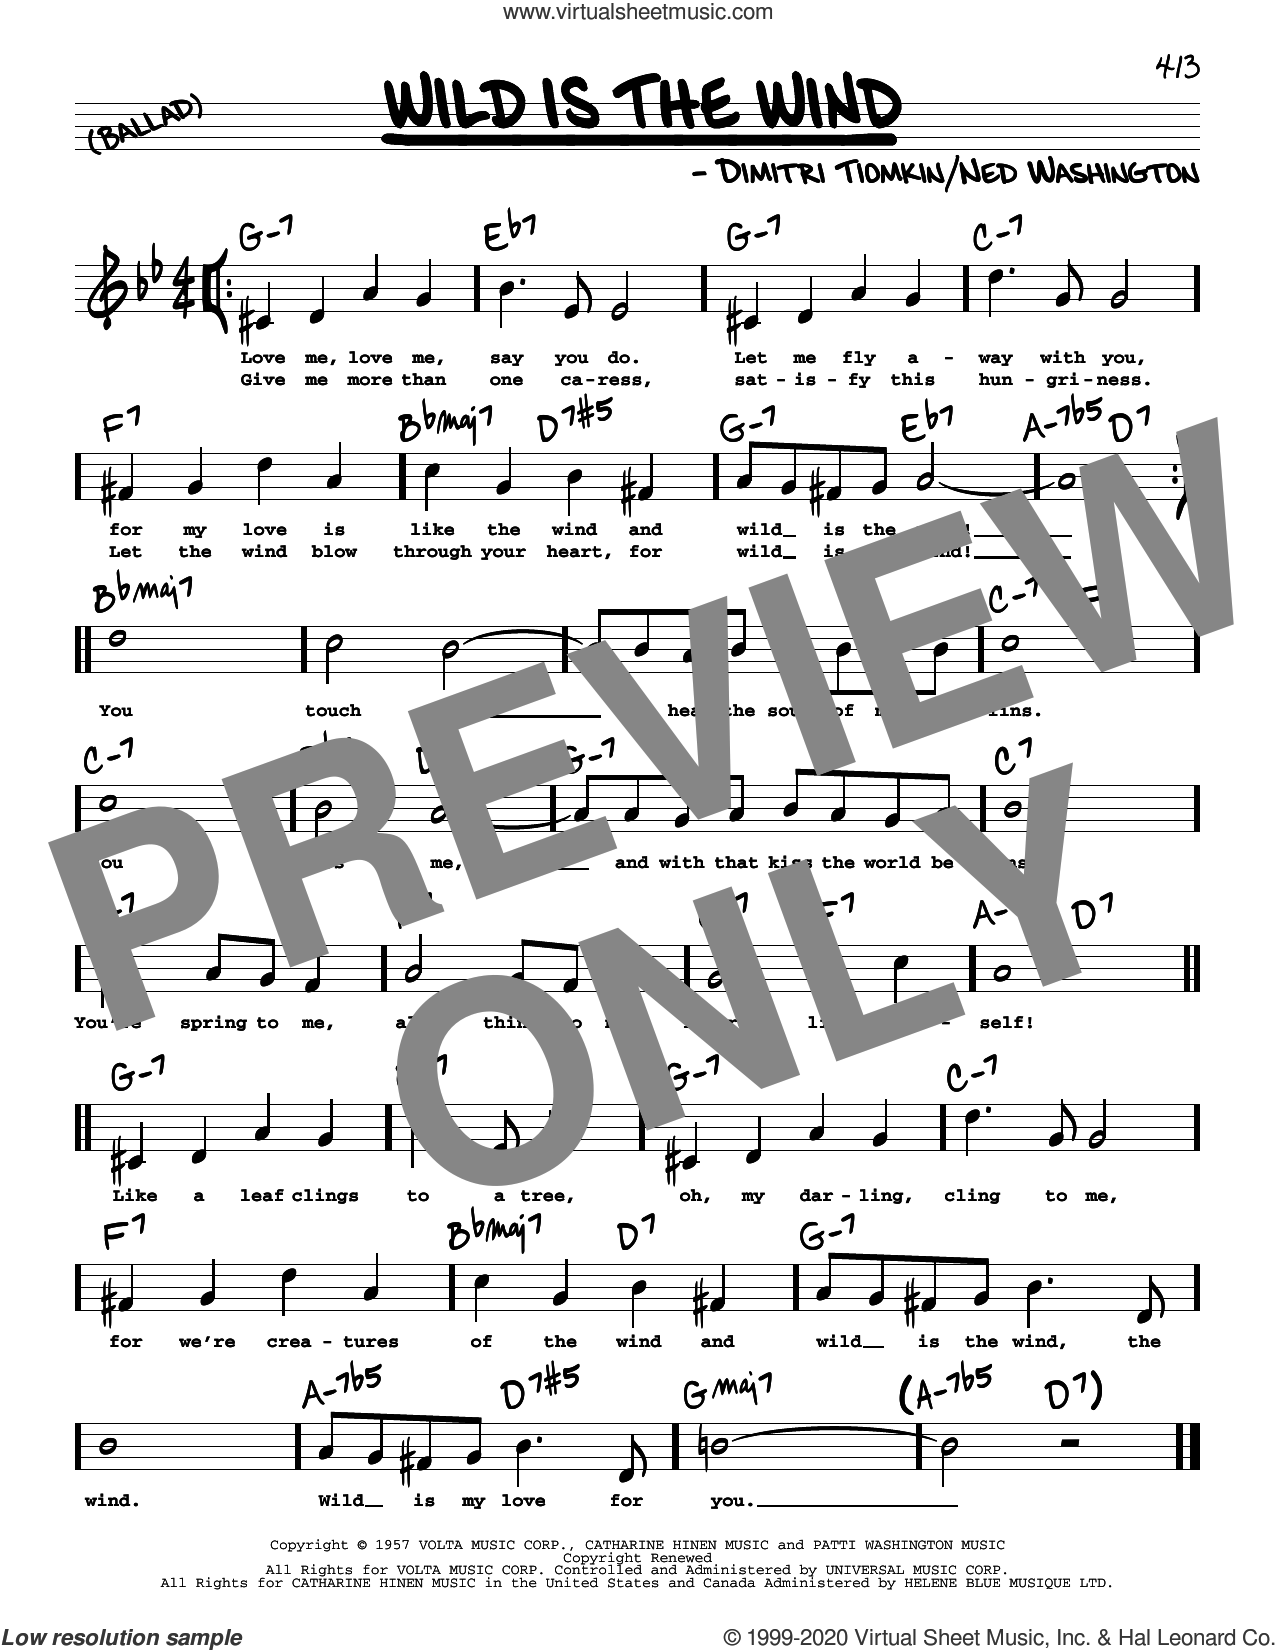 Wild Is The Wind (High Voice) sheet music for voice and other instruments (high voice) by David Bowie, Dimitri Tiomkin and Ned Washington, intermediate skill level